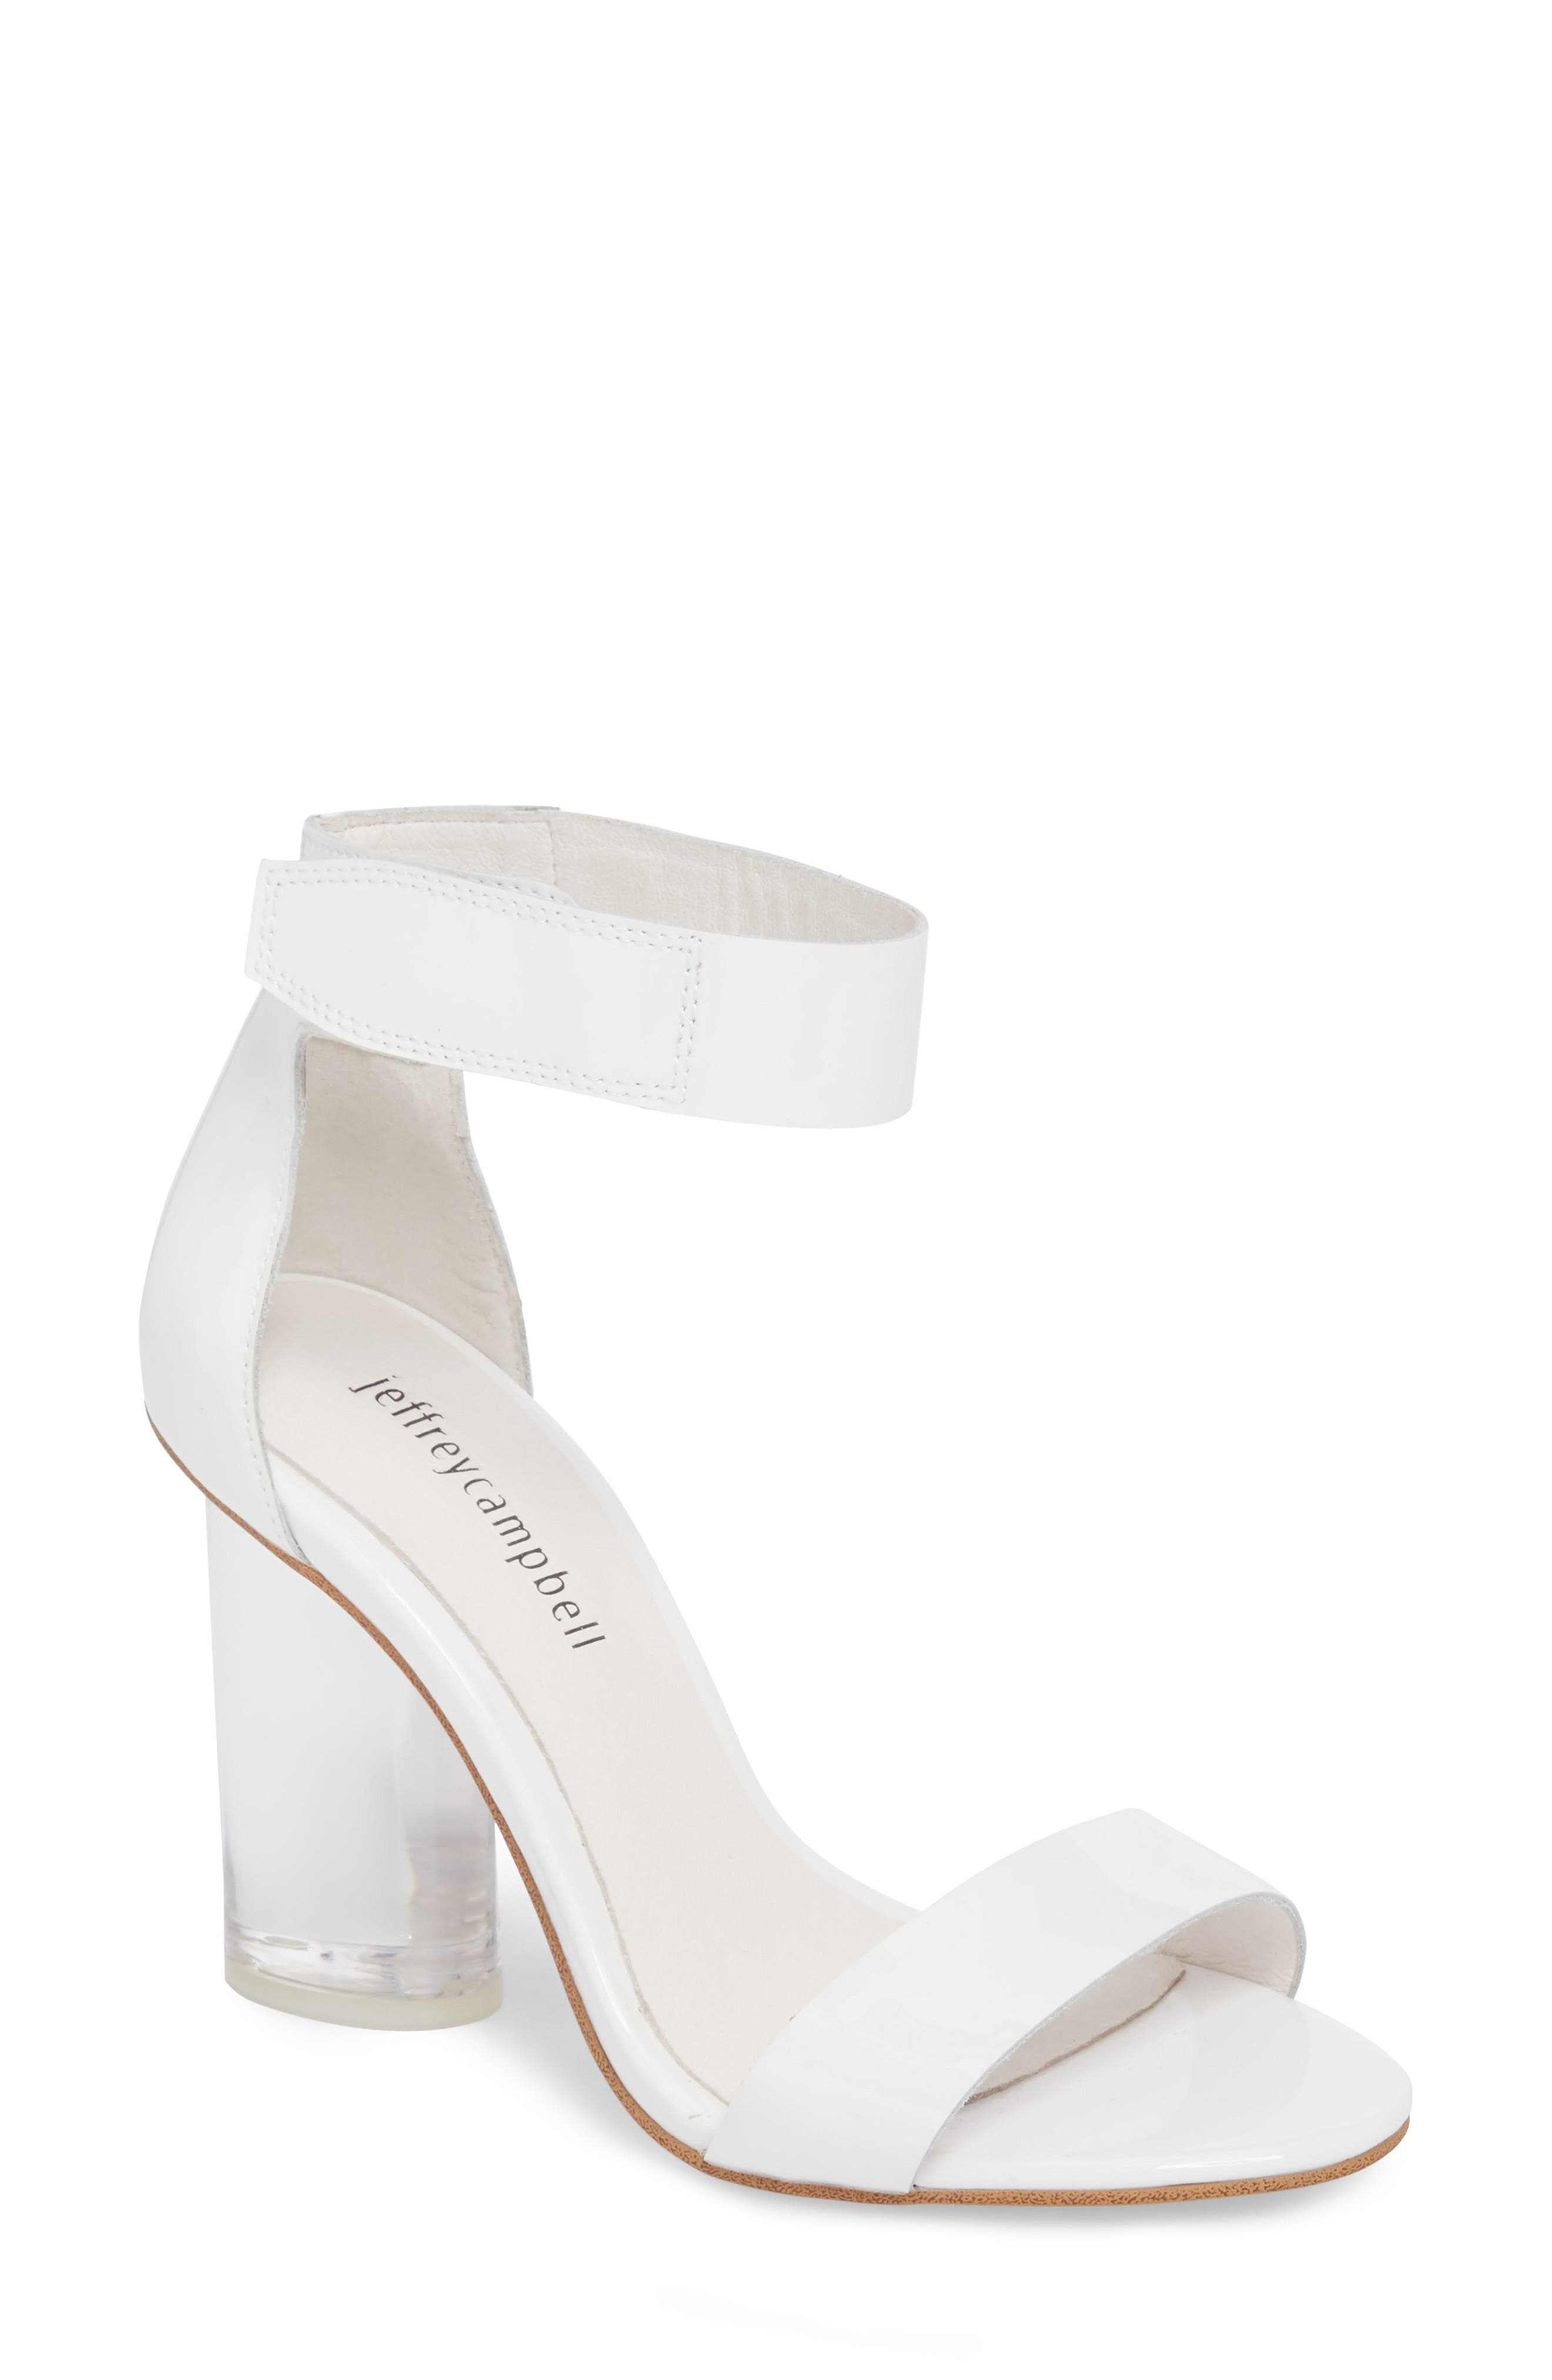 Alessa Clear Heel Sandal,                         Main,                         color, White Patent